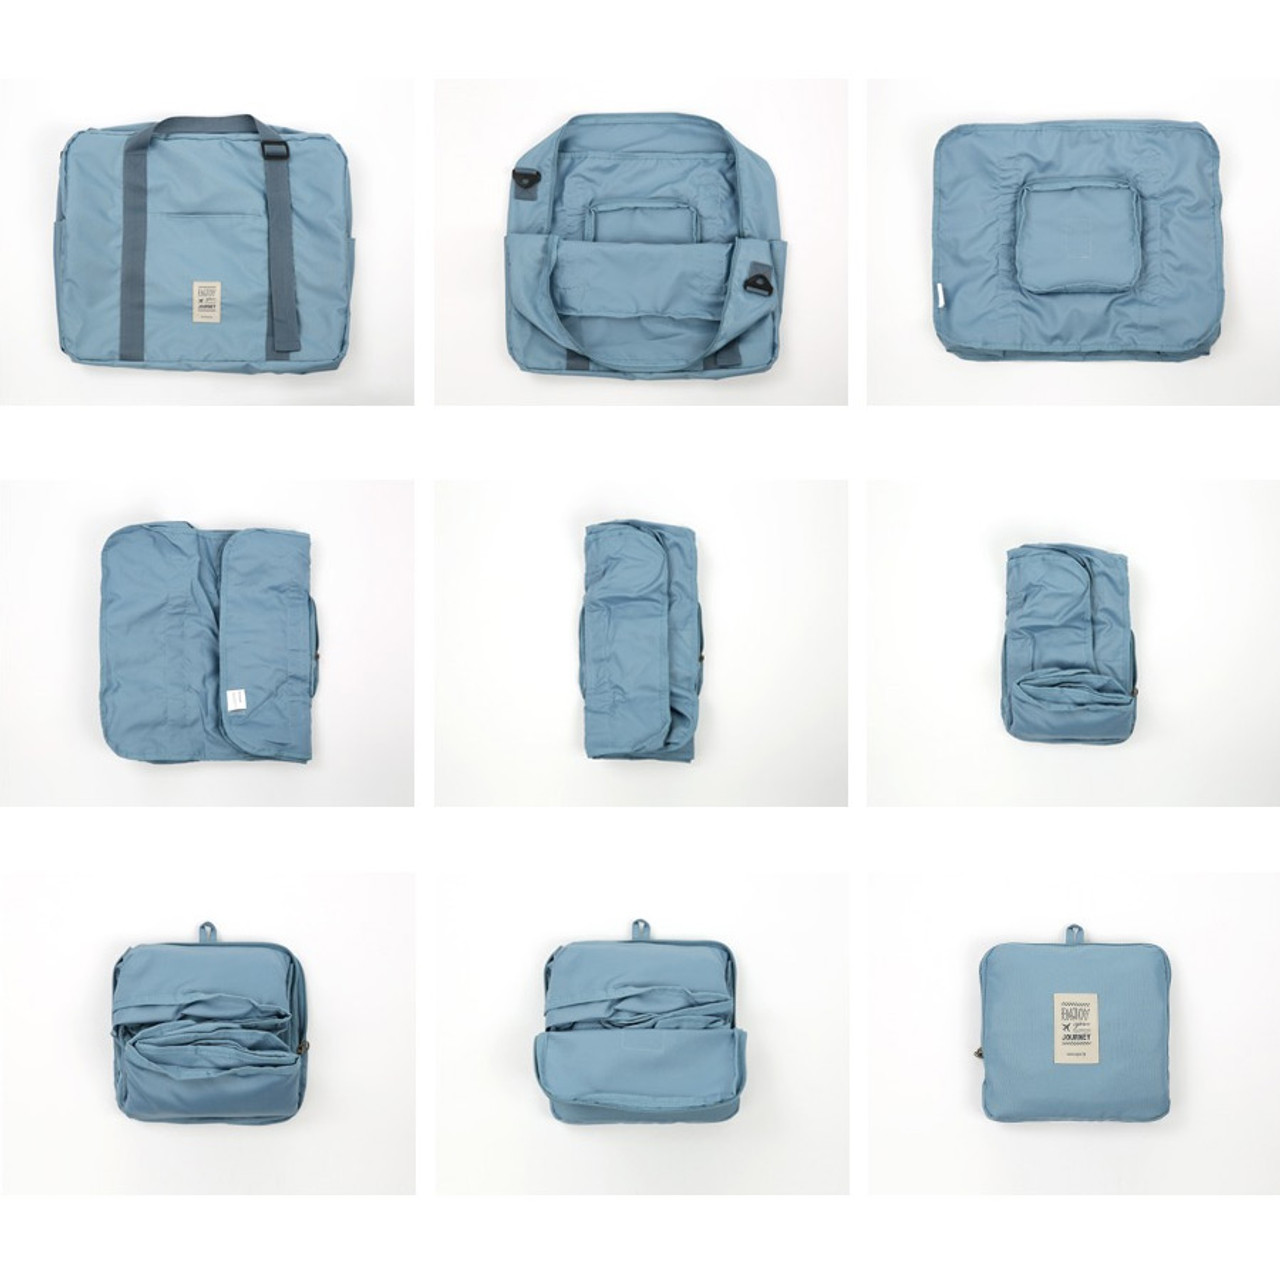 Monopoly easy carry small travel foldable duffle bag jpg 900x900 Small  travel 8f453d6ddc4d6